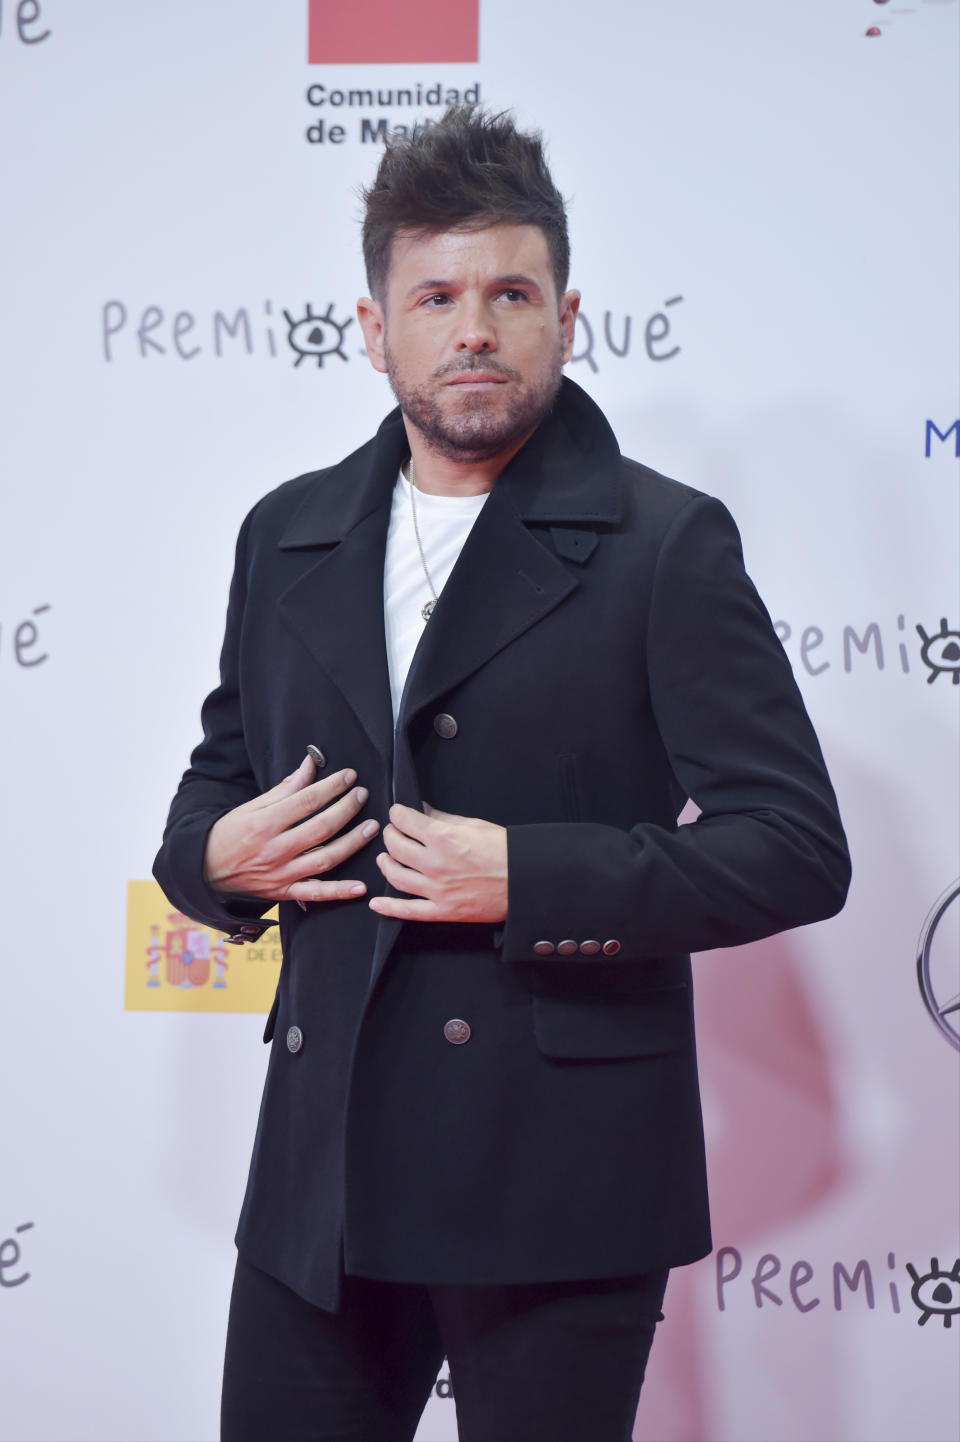 MADRID, SPAIN - JANUARY 16: Pablo Lopez attends 'Jose Maria Forque Awards' 2021 red carpet at IFEMA on January 16, 2021 in Madrid, Spain. (Photo by Juan Naharro Gimenez/WireImage)